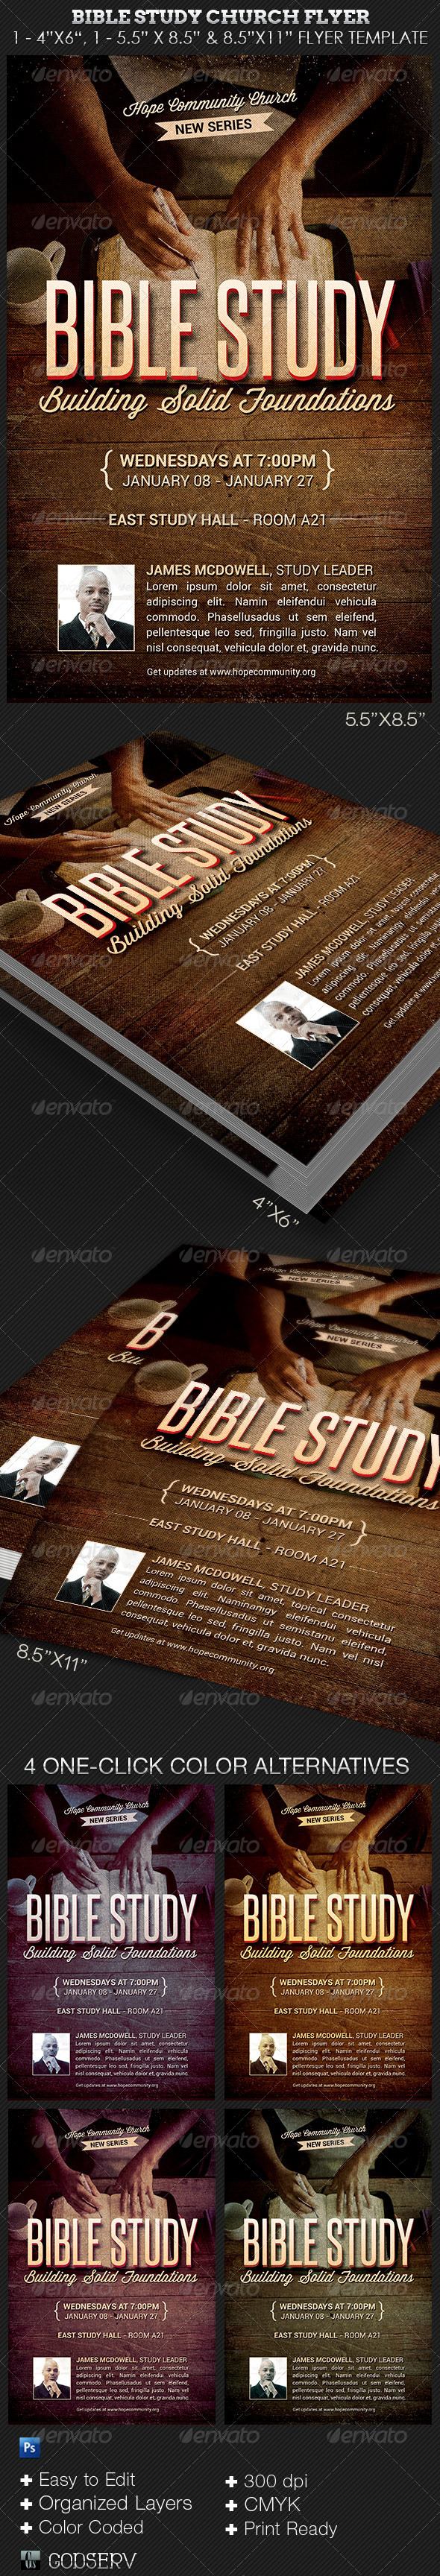 GraphicRiver Bible Study Church Flyer Photoshop Template 8304919